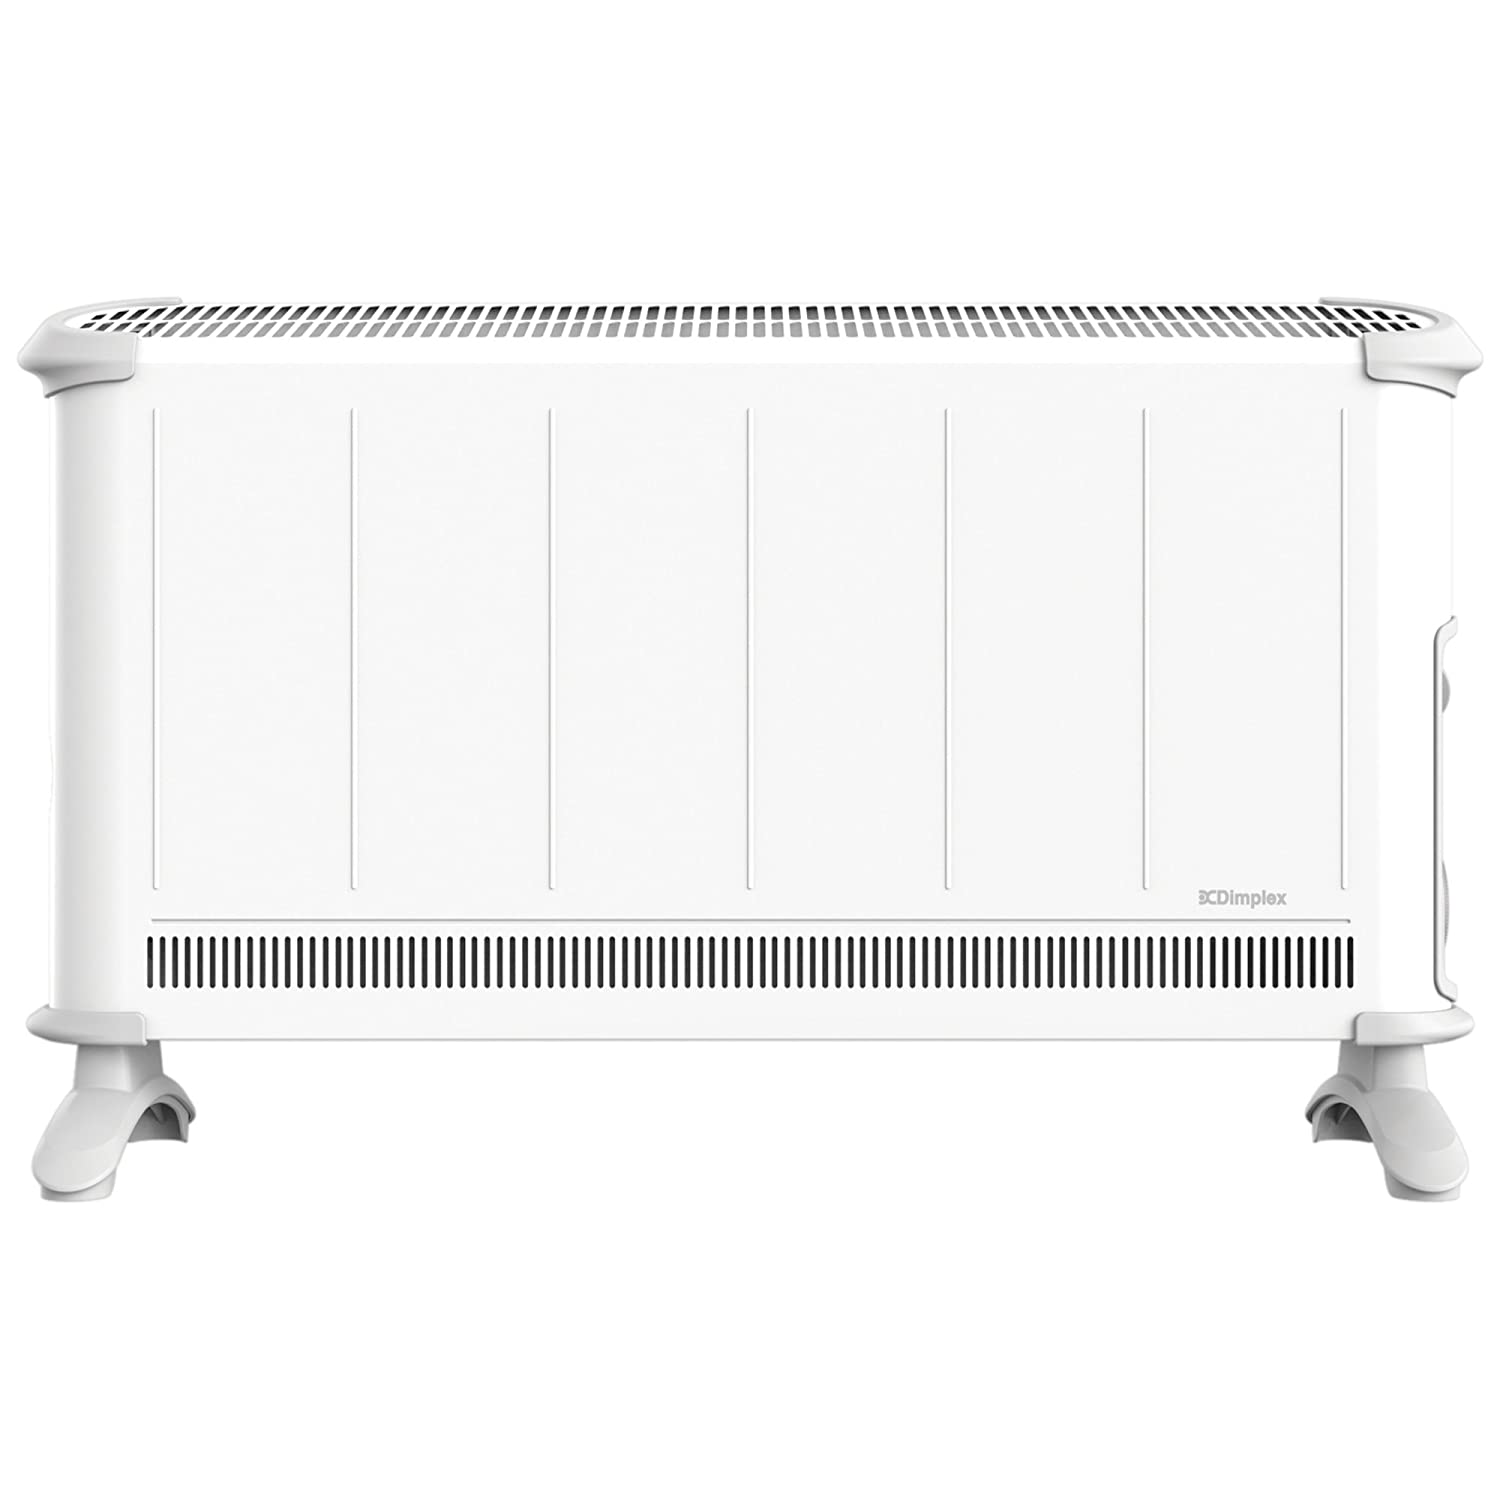 Dimplex Convector with Thermostat Choice of Heat Settings and Timer, 3 Kilowatt, White 403TSTI